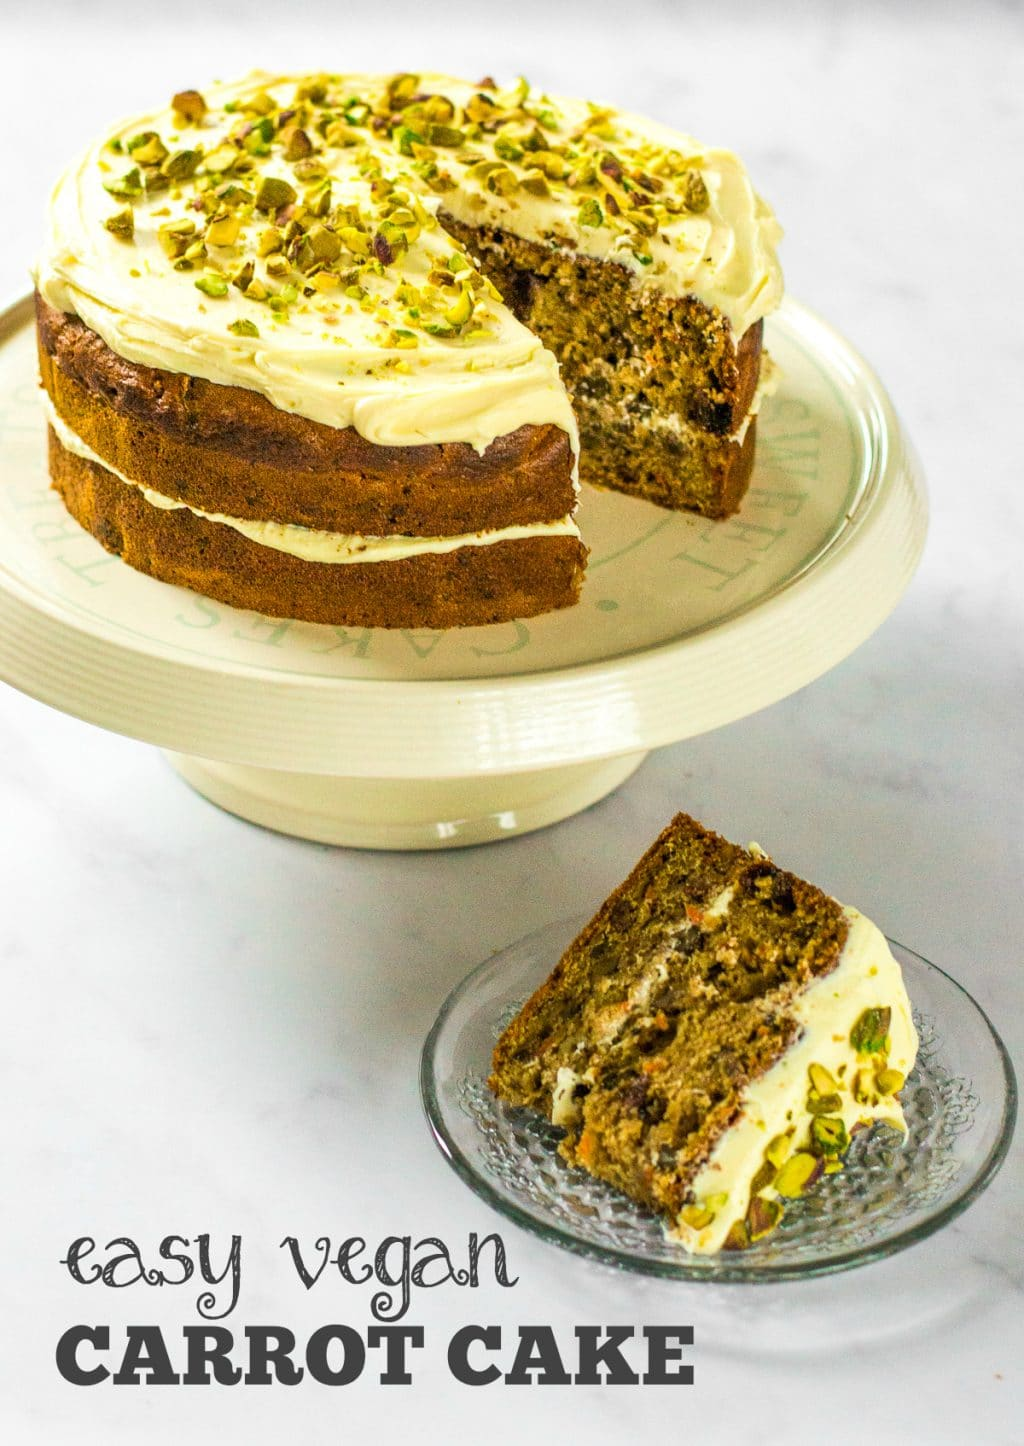 Easy Vegan Carrot Cake